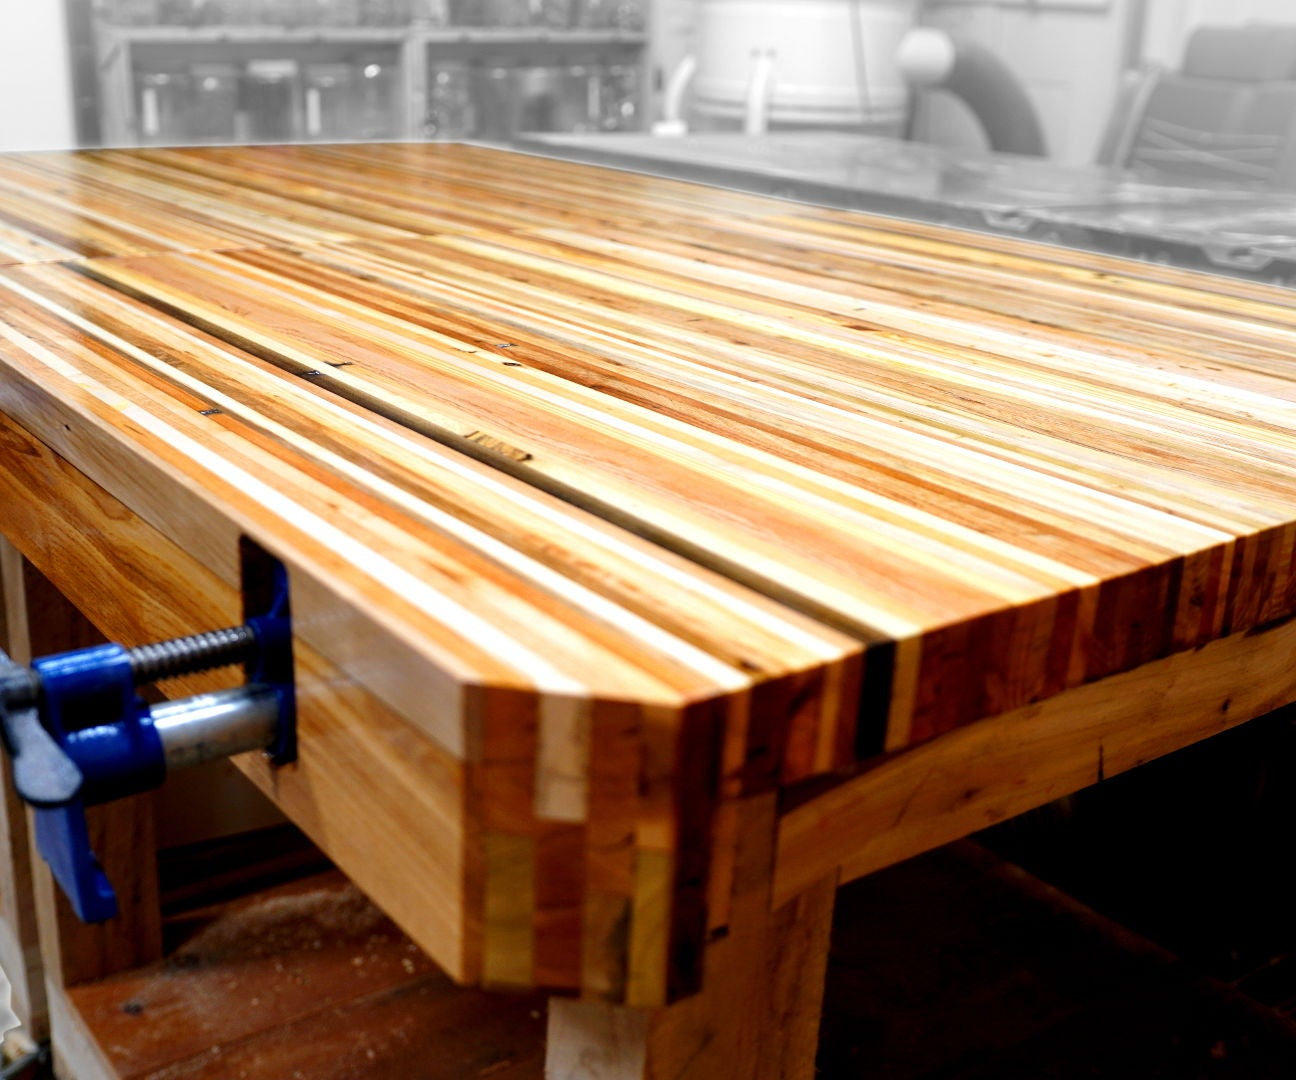 Pallet Wood Workbenches: 10 Steps (with Pictures